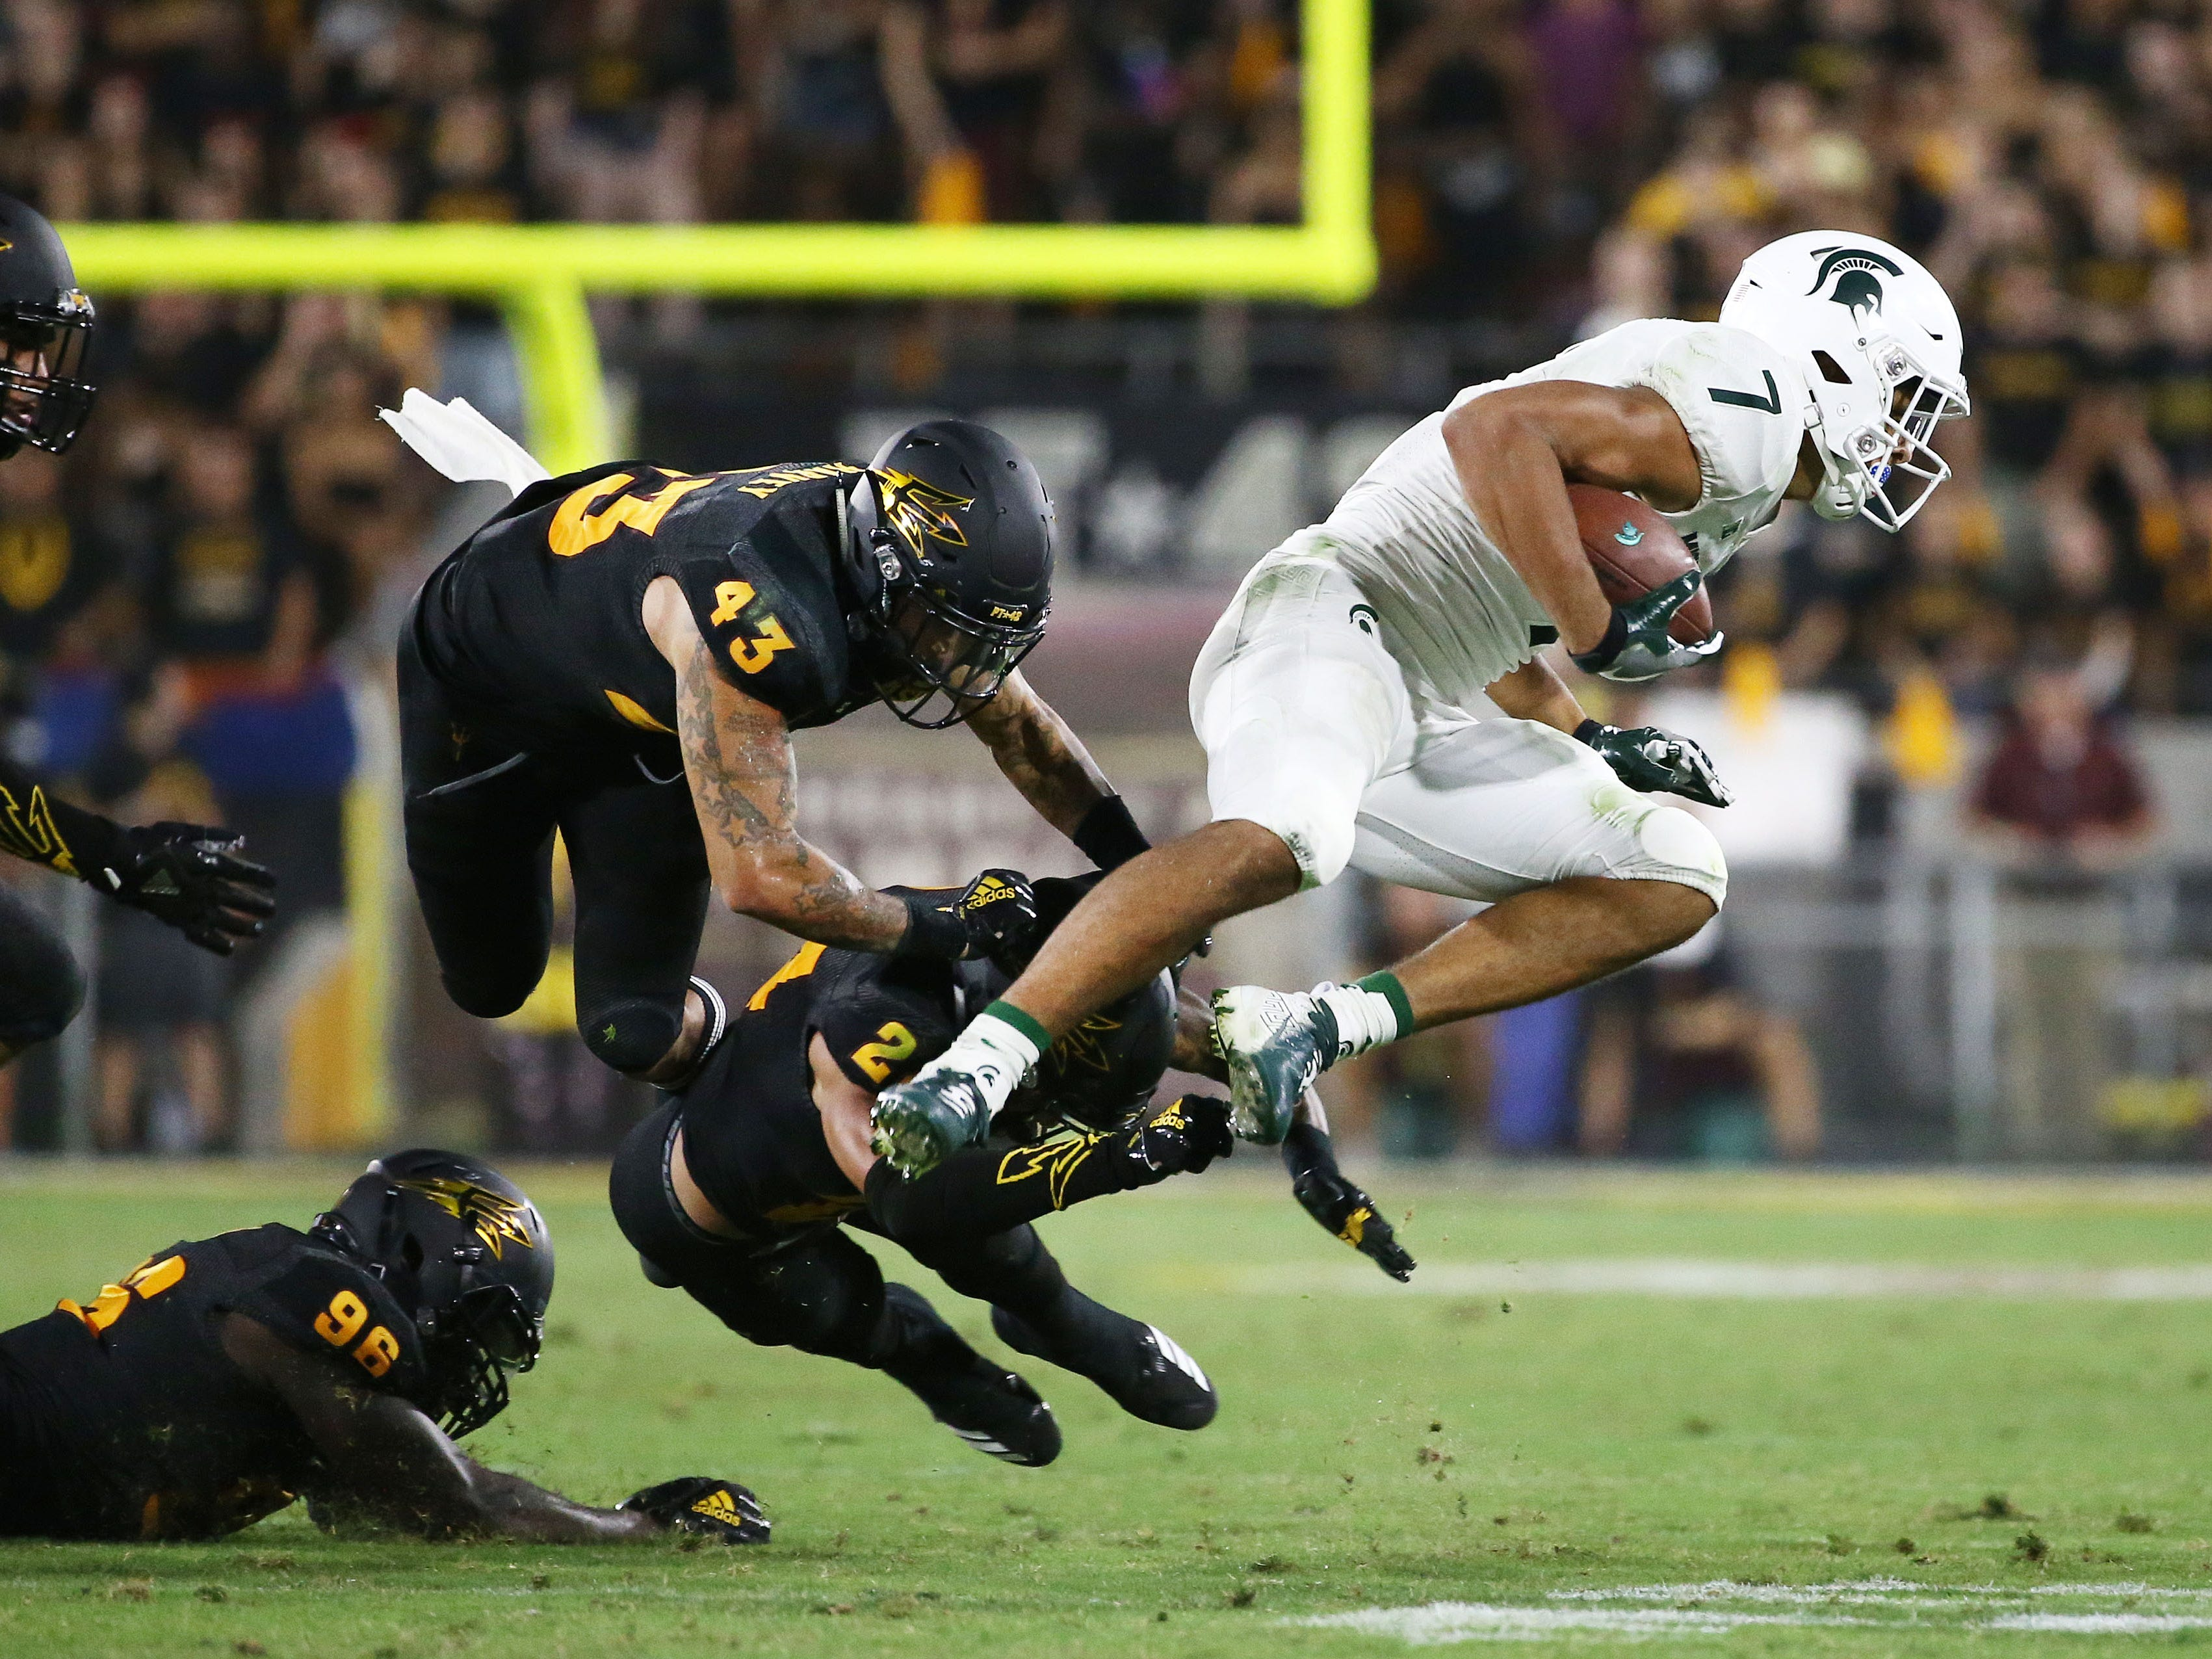 Arizona State's Jalen Harvey (43) and Chase Lucas (24) tackle Michigan State wide receiver Cody White in the second half on Sep. 8, 2018, at Sun Devil Stadium.